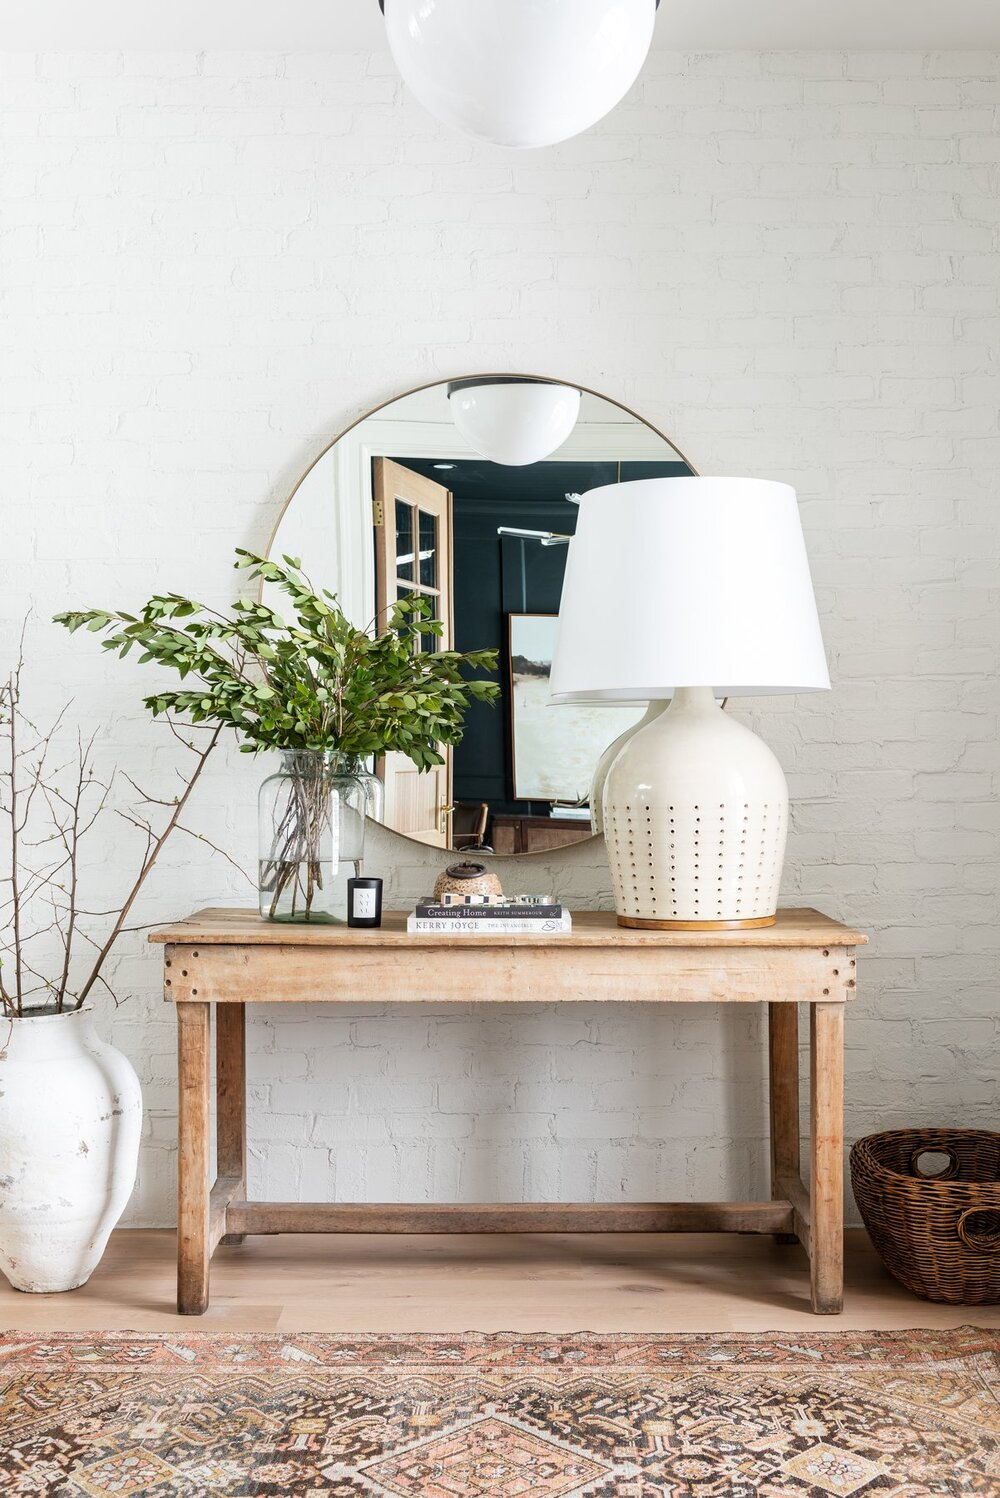 Best Warm White Paint Colors - Benjamin Moore - IMAGE: via Studio McGee feat. paint color 'Swiss Coffee @ 75% Strength' from Benjamin Moore